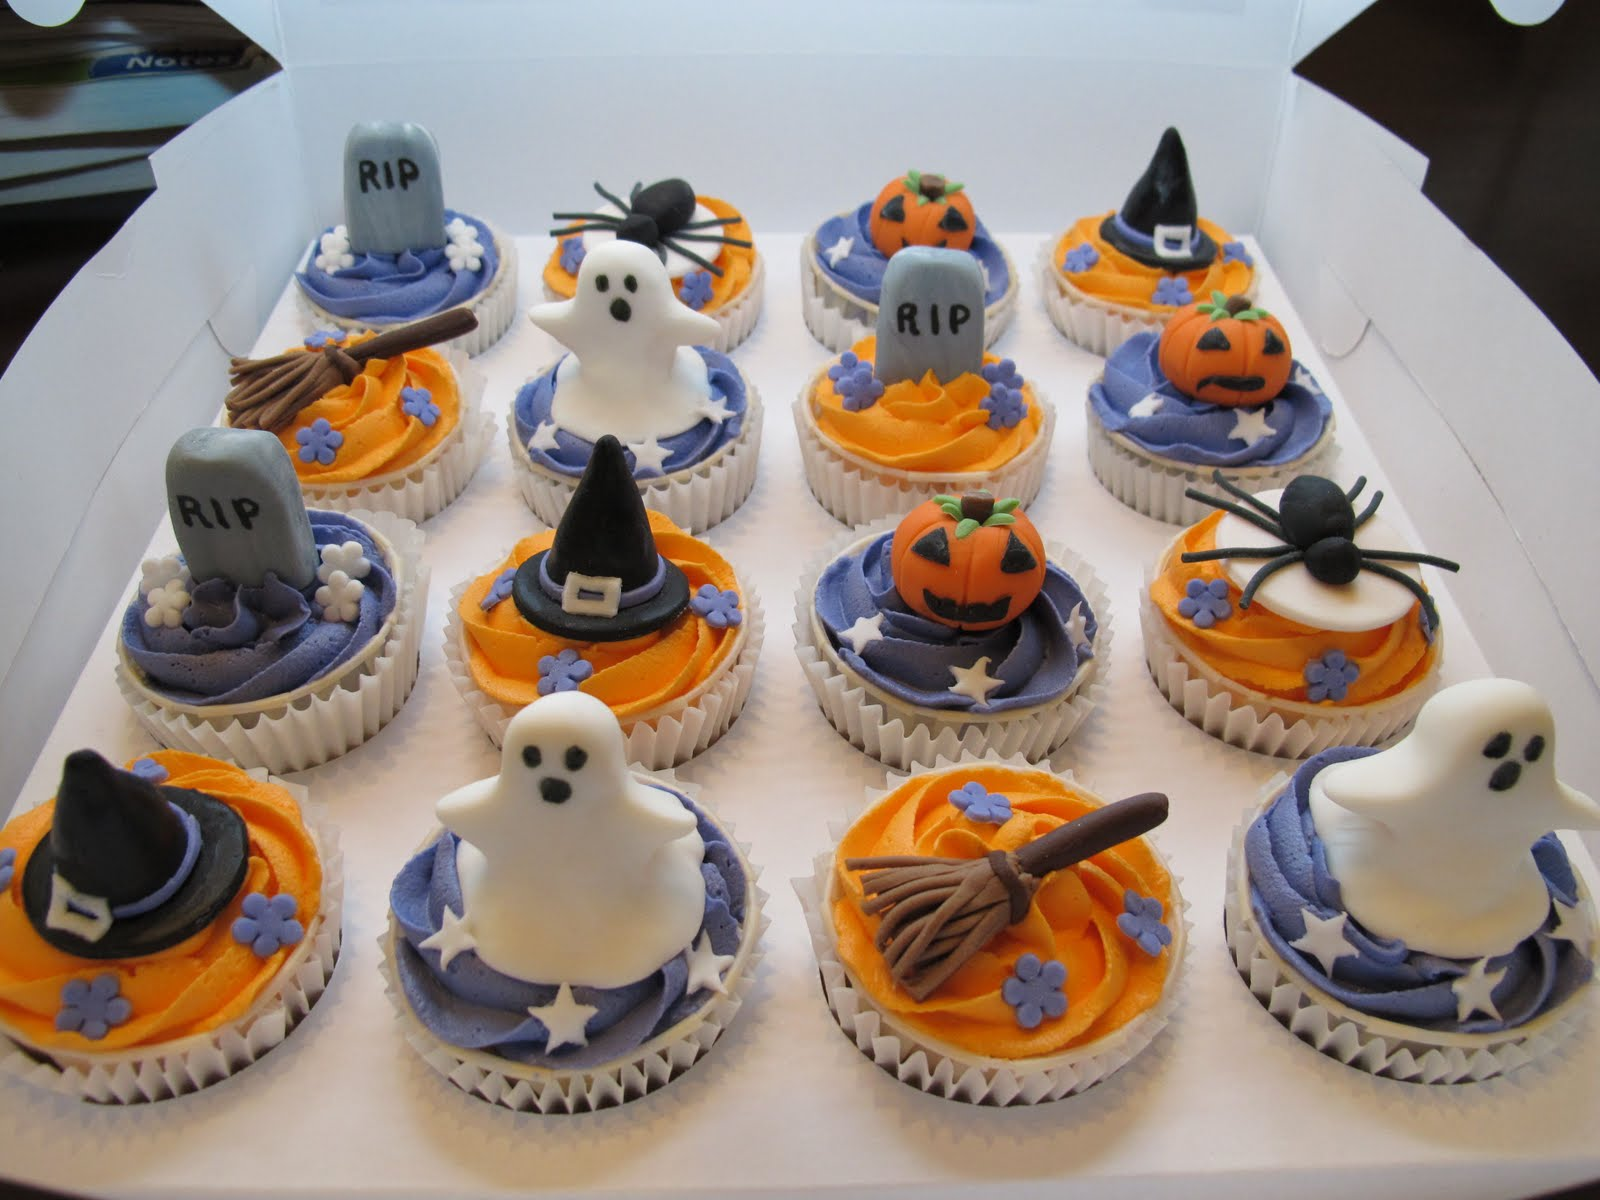 Pink oven cakes and cookies halloween cupcake ideas - Halloween decorations for cupcakes ...